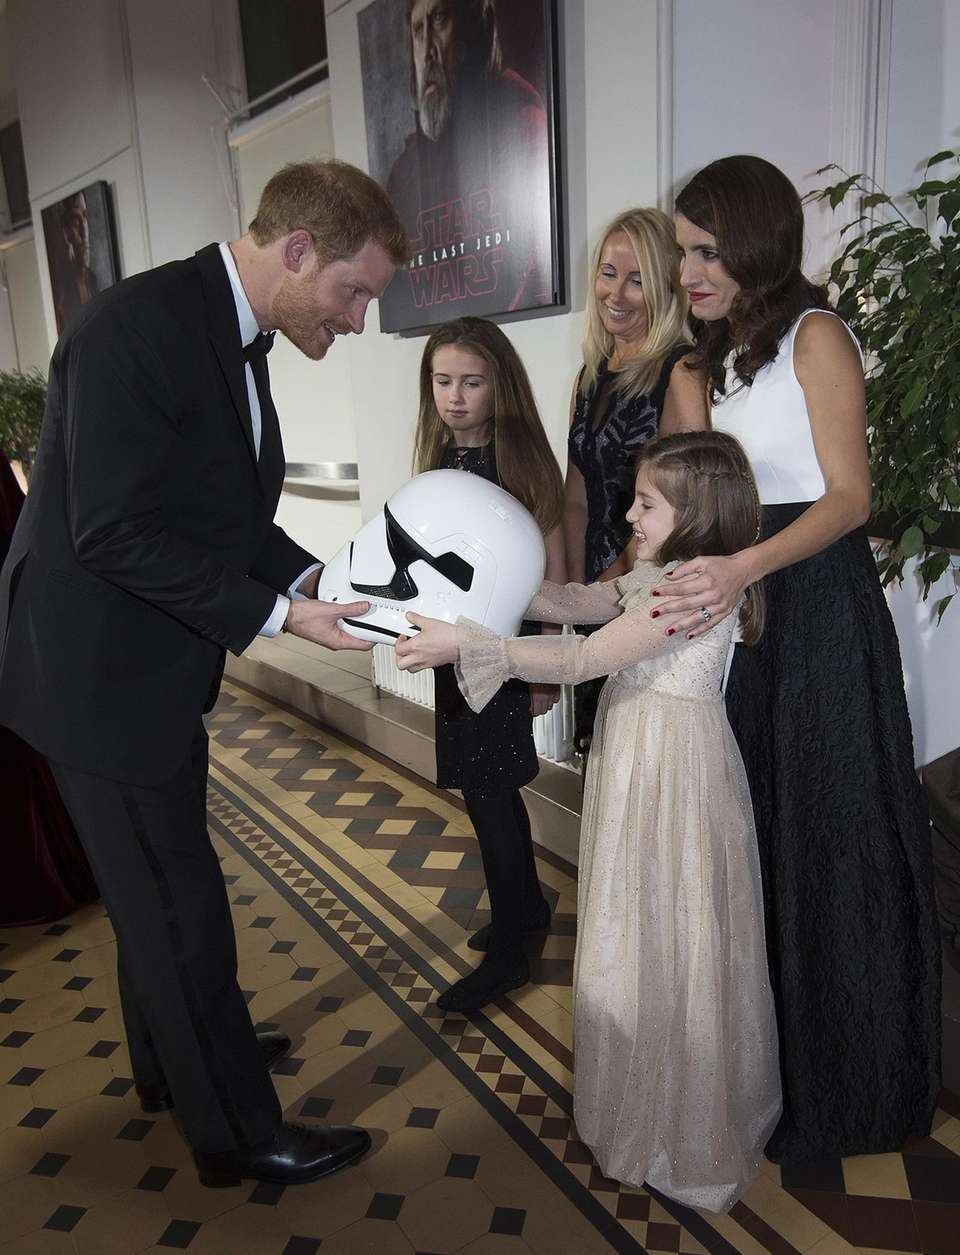 Prince Harry is handed a Stormtrooper helmet by